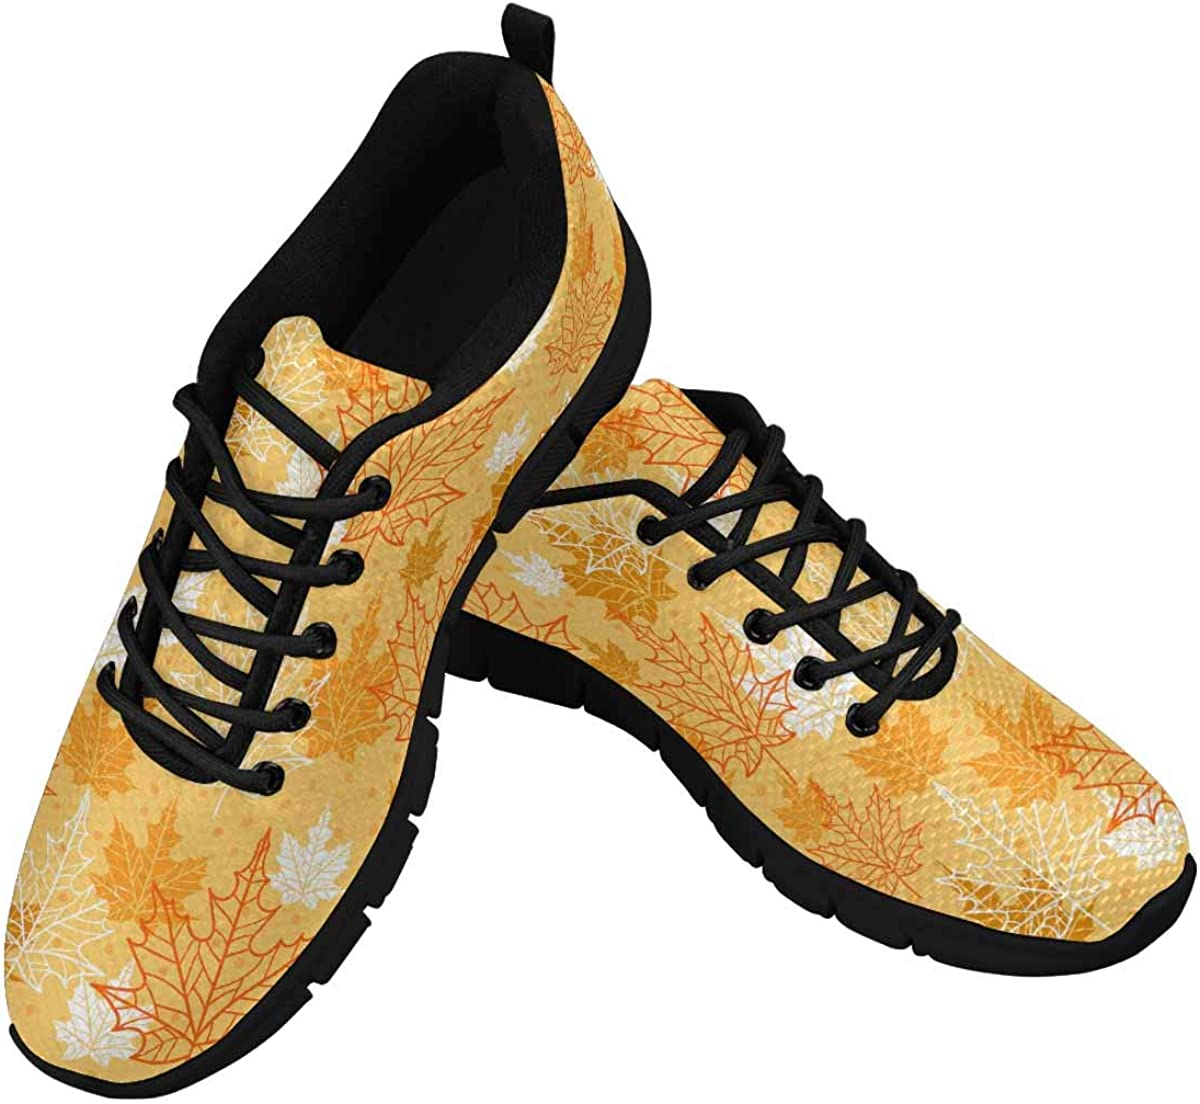 InterestPrint Yellow Autumn Leaves Women Walking Shoes Comfortable Lightweight Work Casual Travel Sneakers